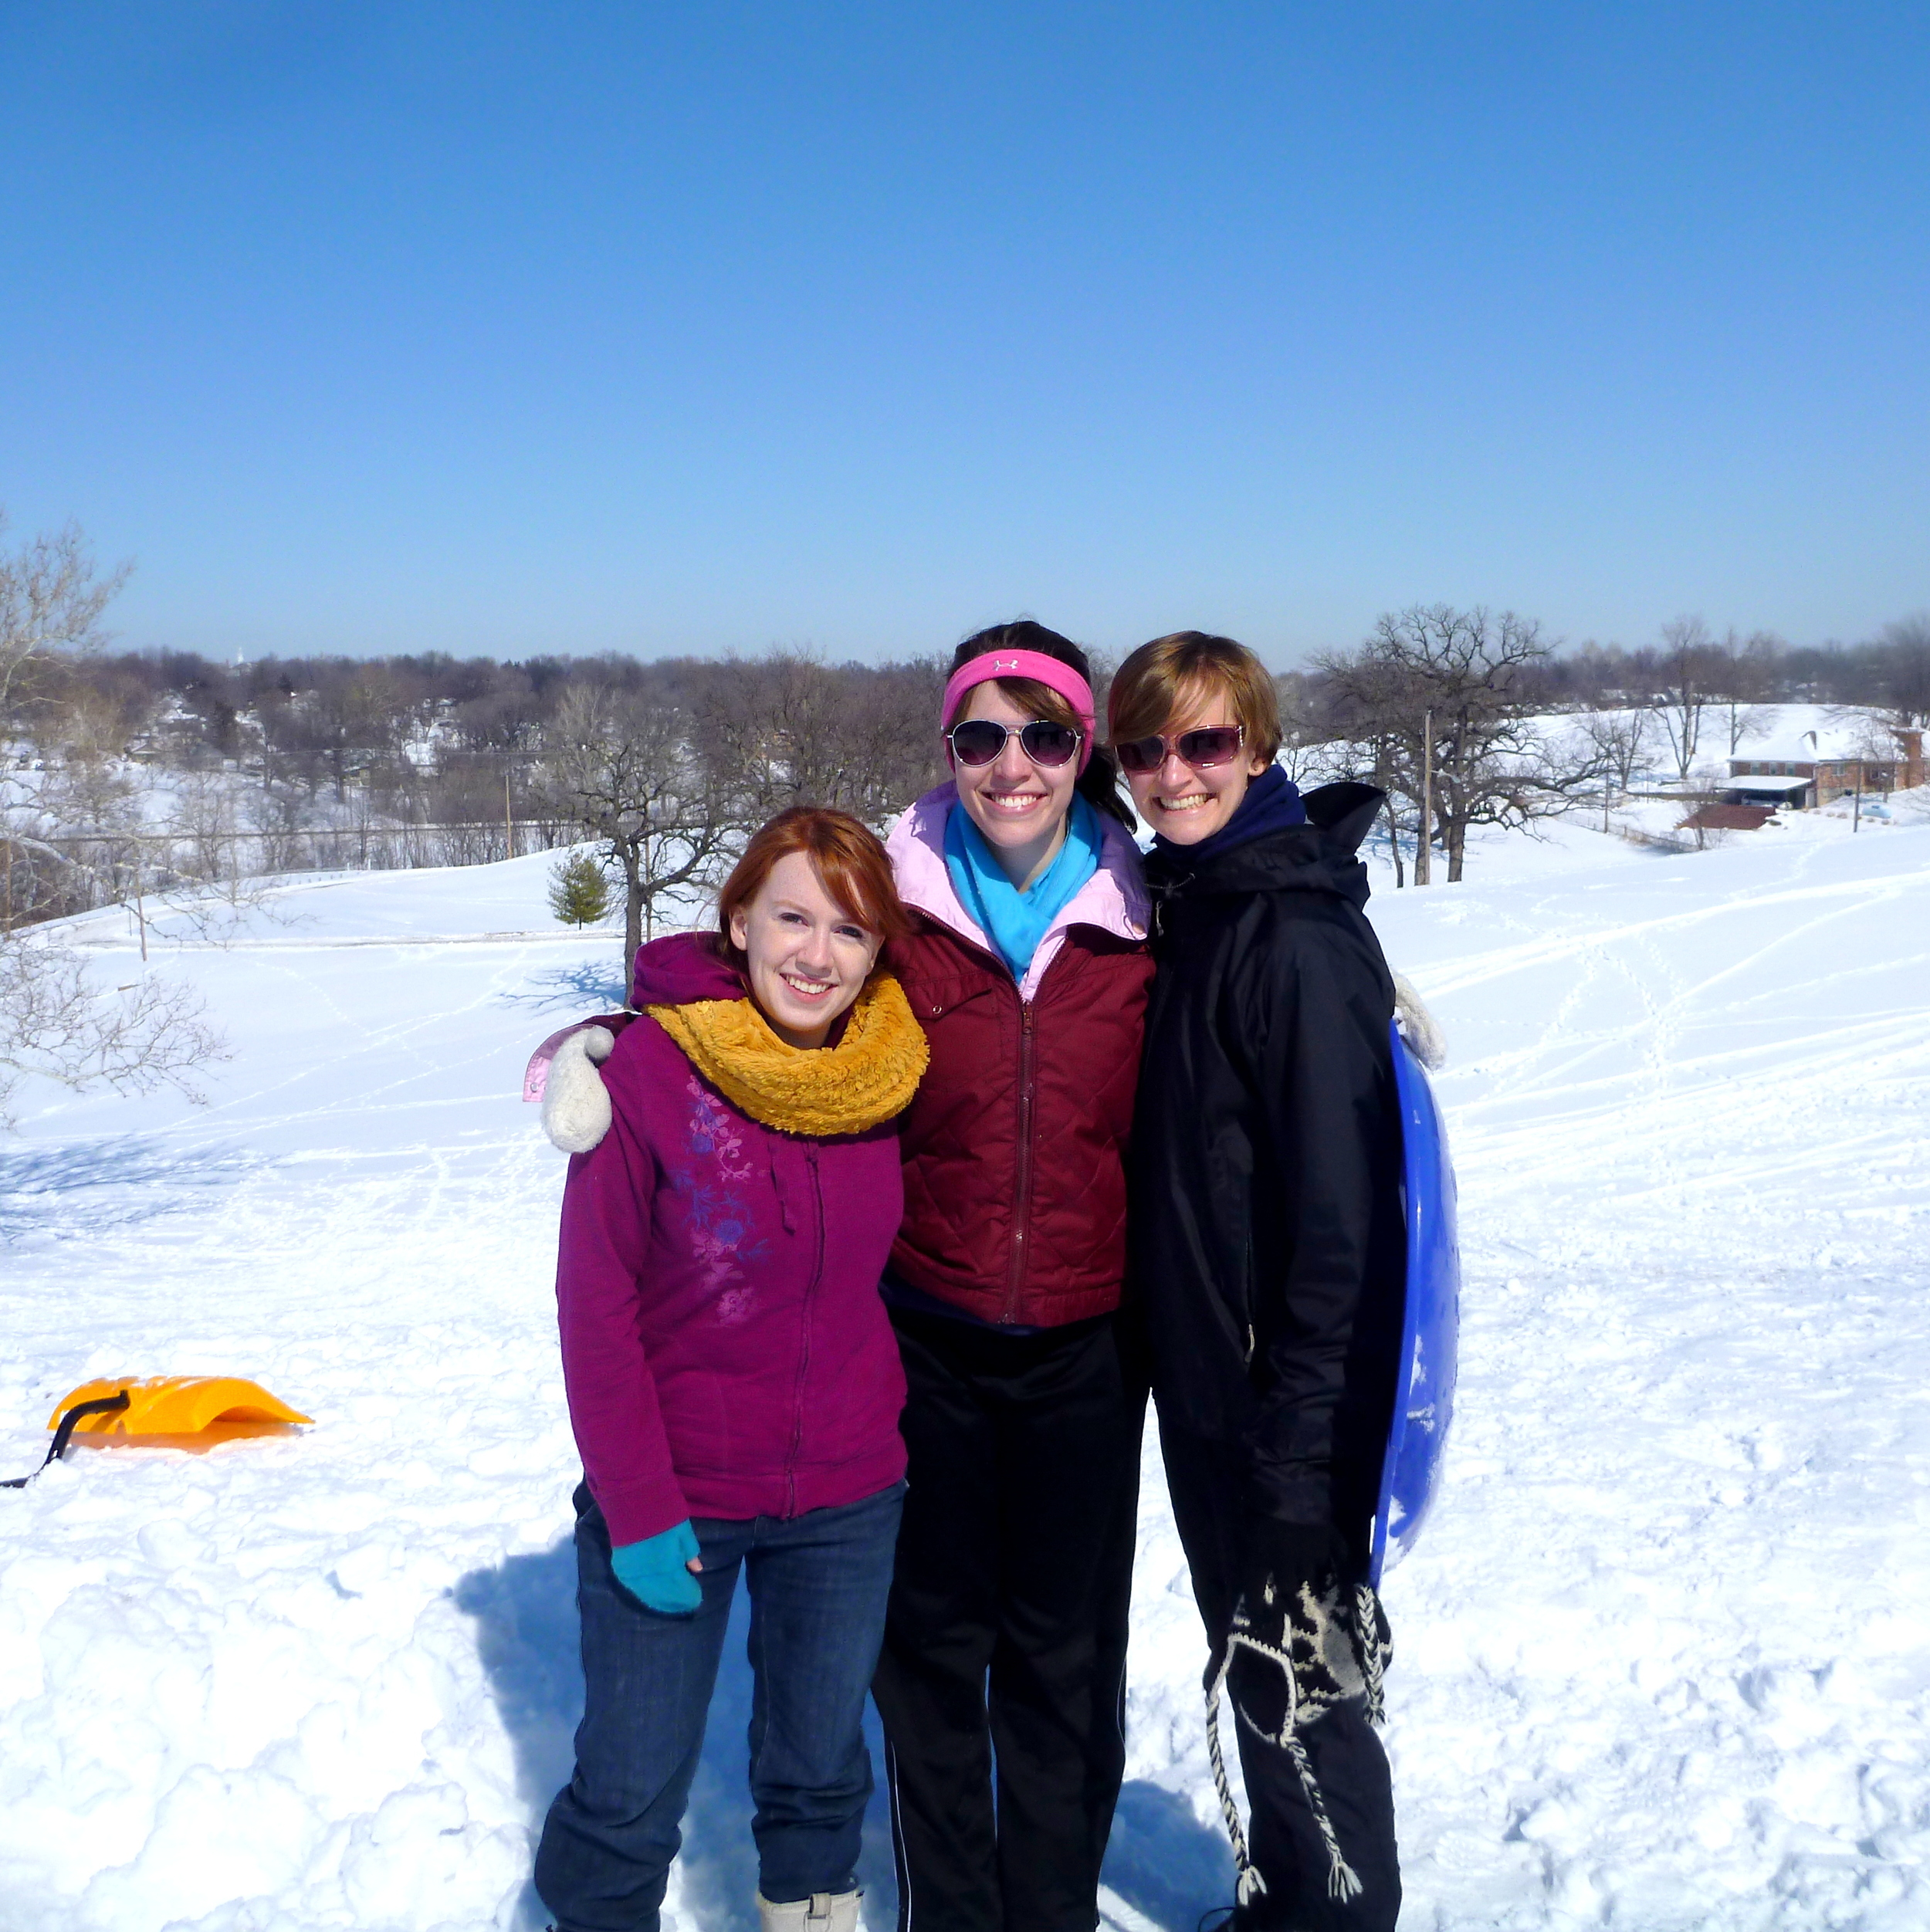 Sledding with friends Caitlin and Brie